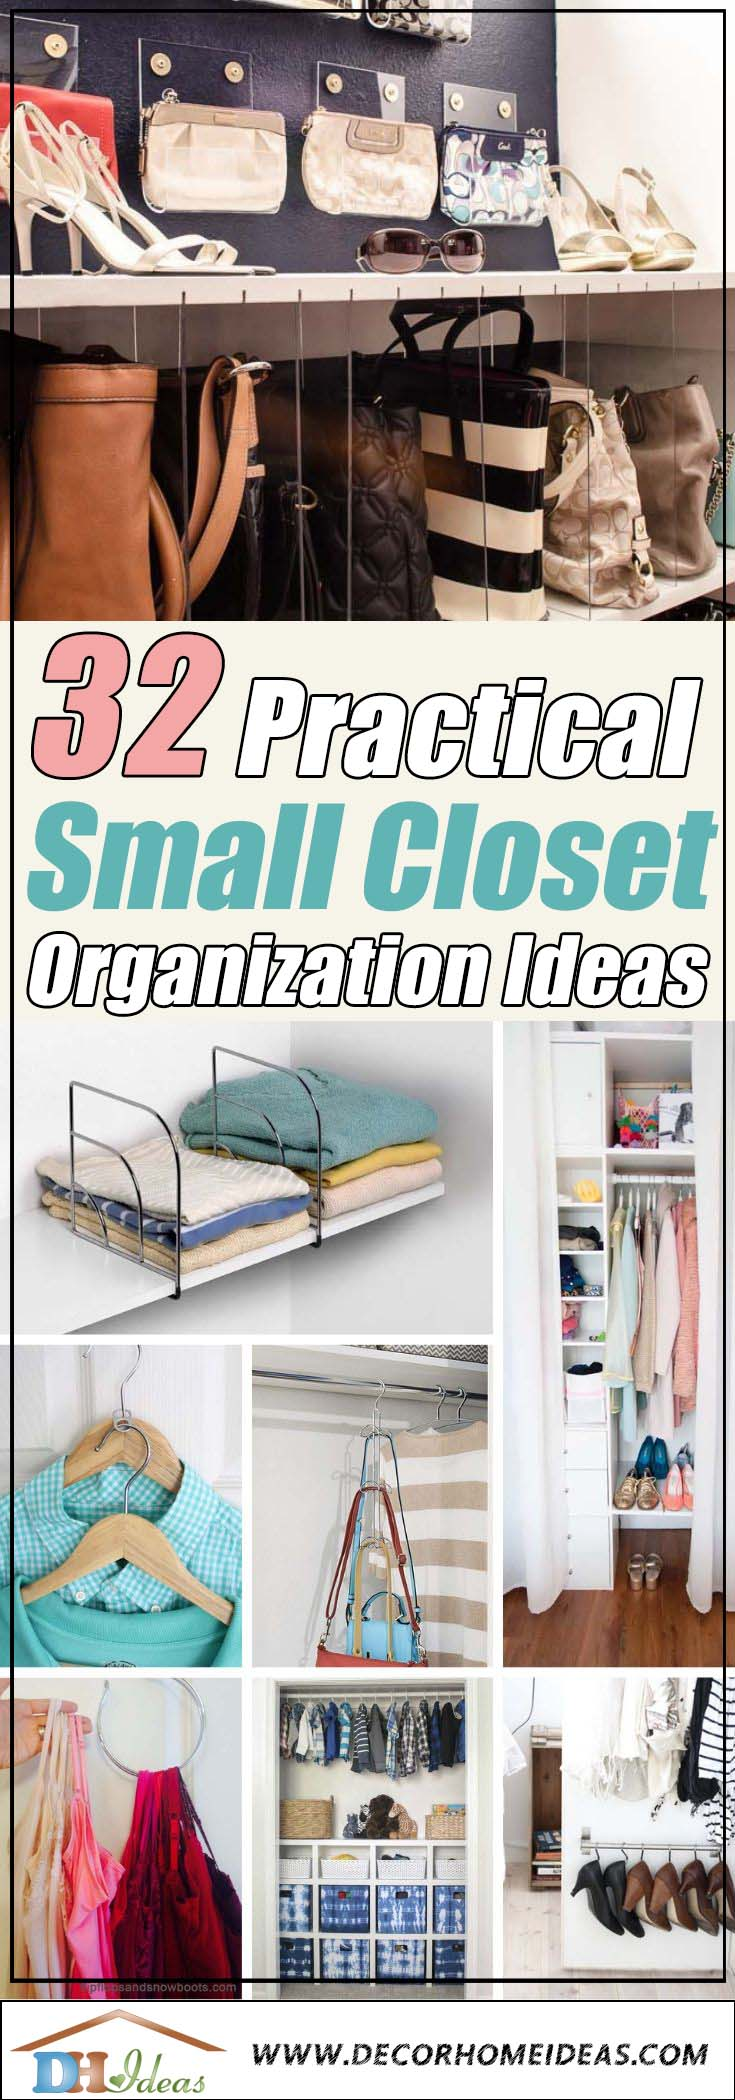 24 Ways To Squeeze More Space Out of a Small Closet  Decor Home Ideas